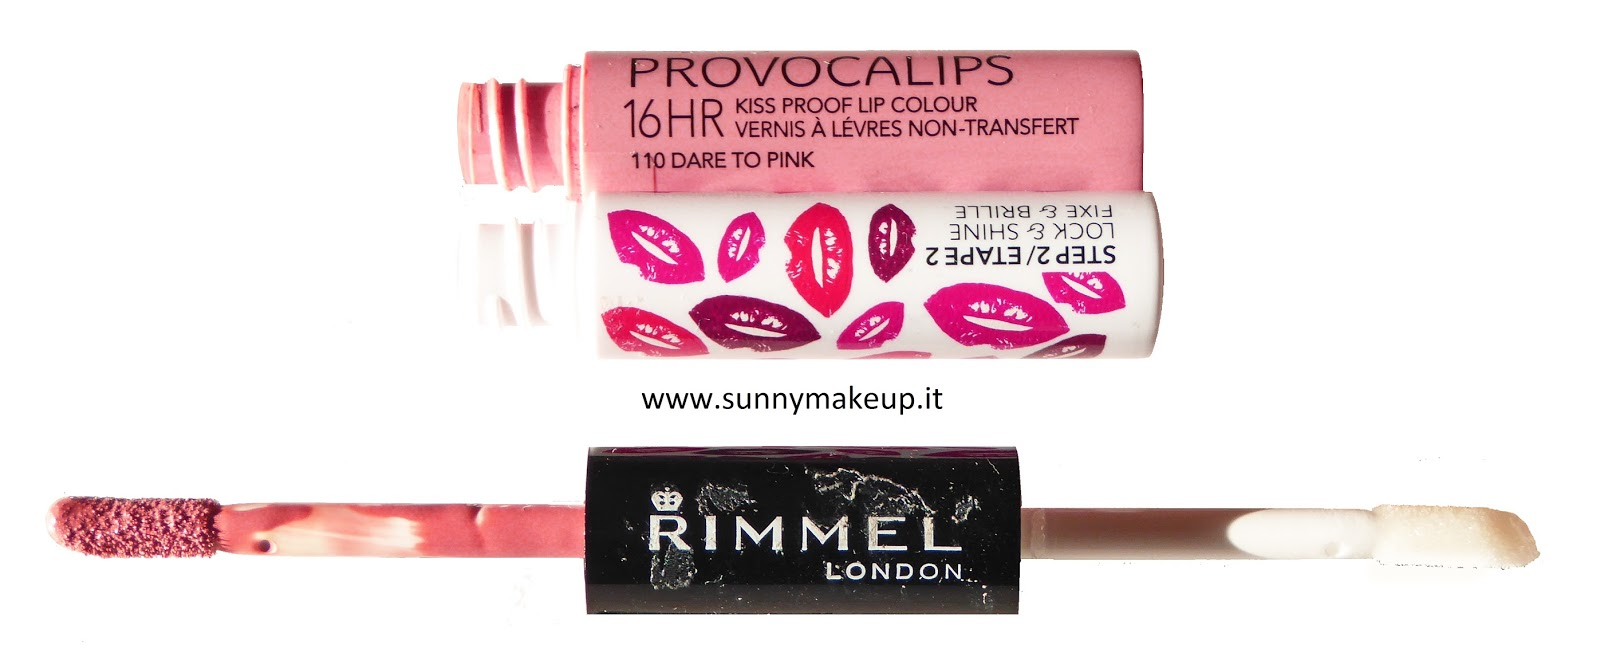 Rimmel London - Provocalips: Swatch e review del rossetto liquido effetto lacca 110 Dare to Pink